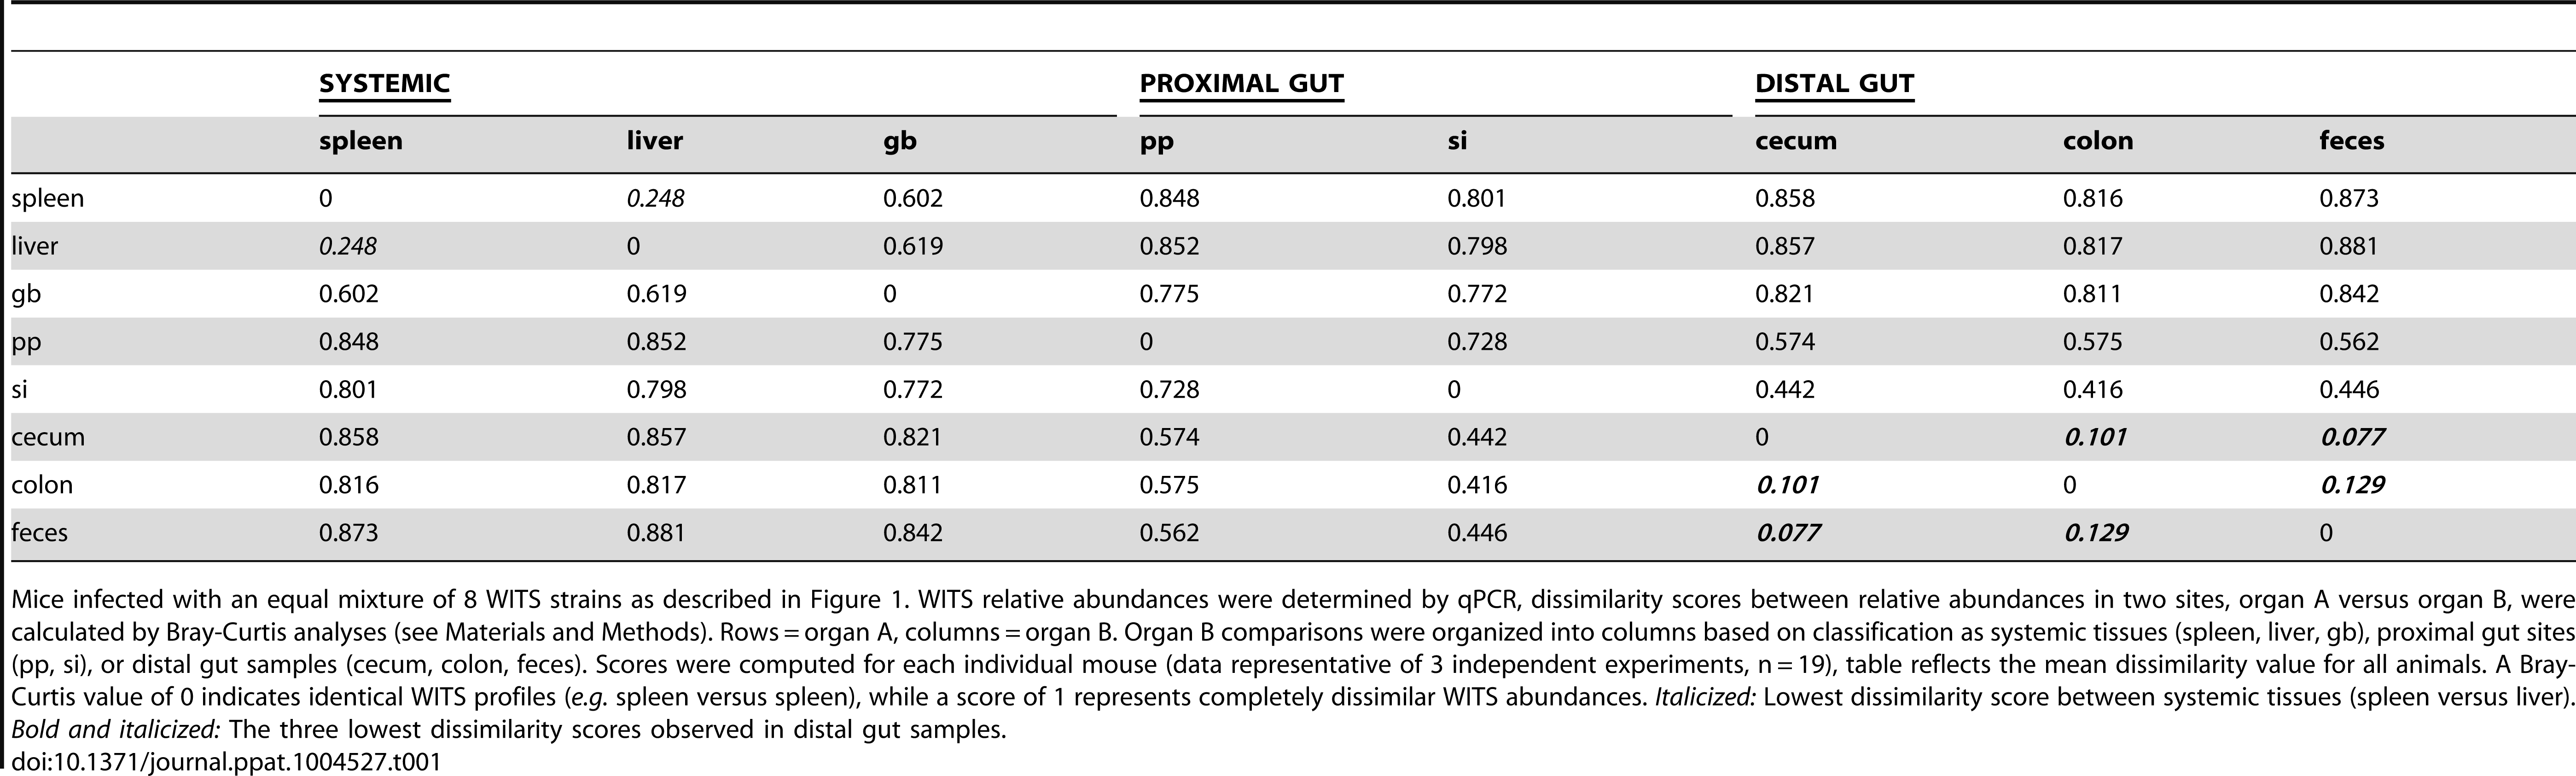 Bray-Curtis dissimilarity values of WITS relative abundances within murine tissues during persistent infection.